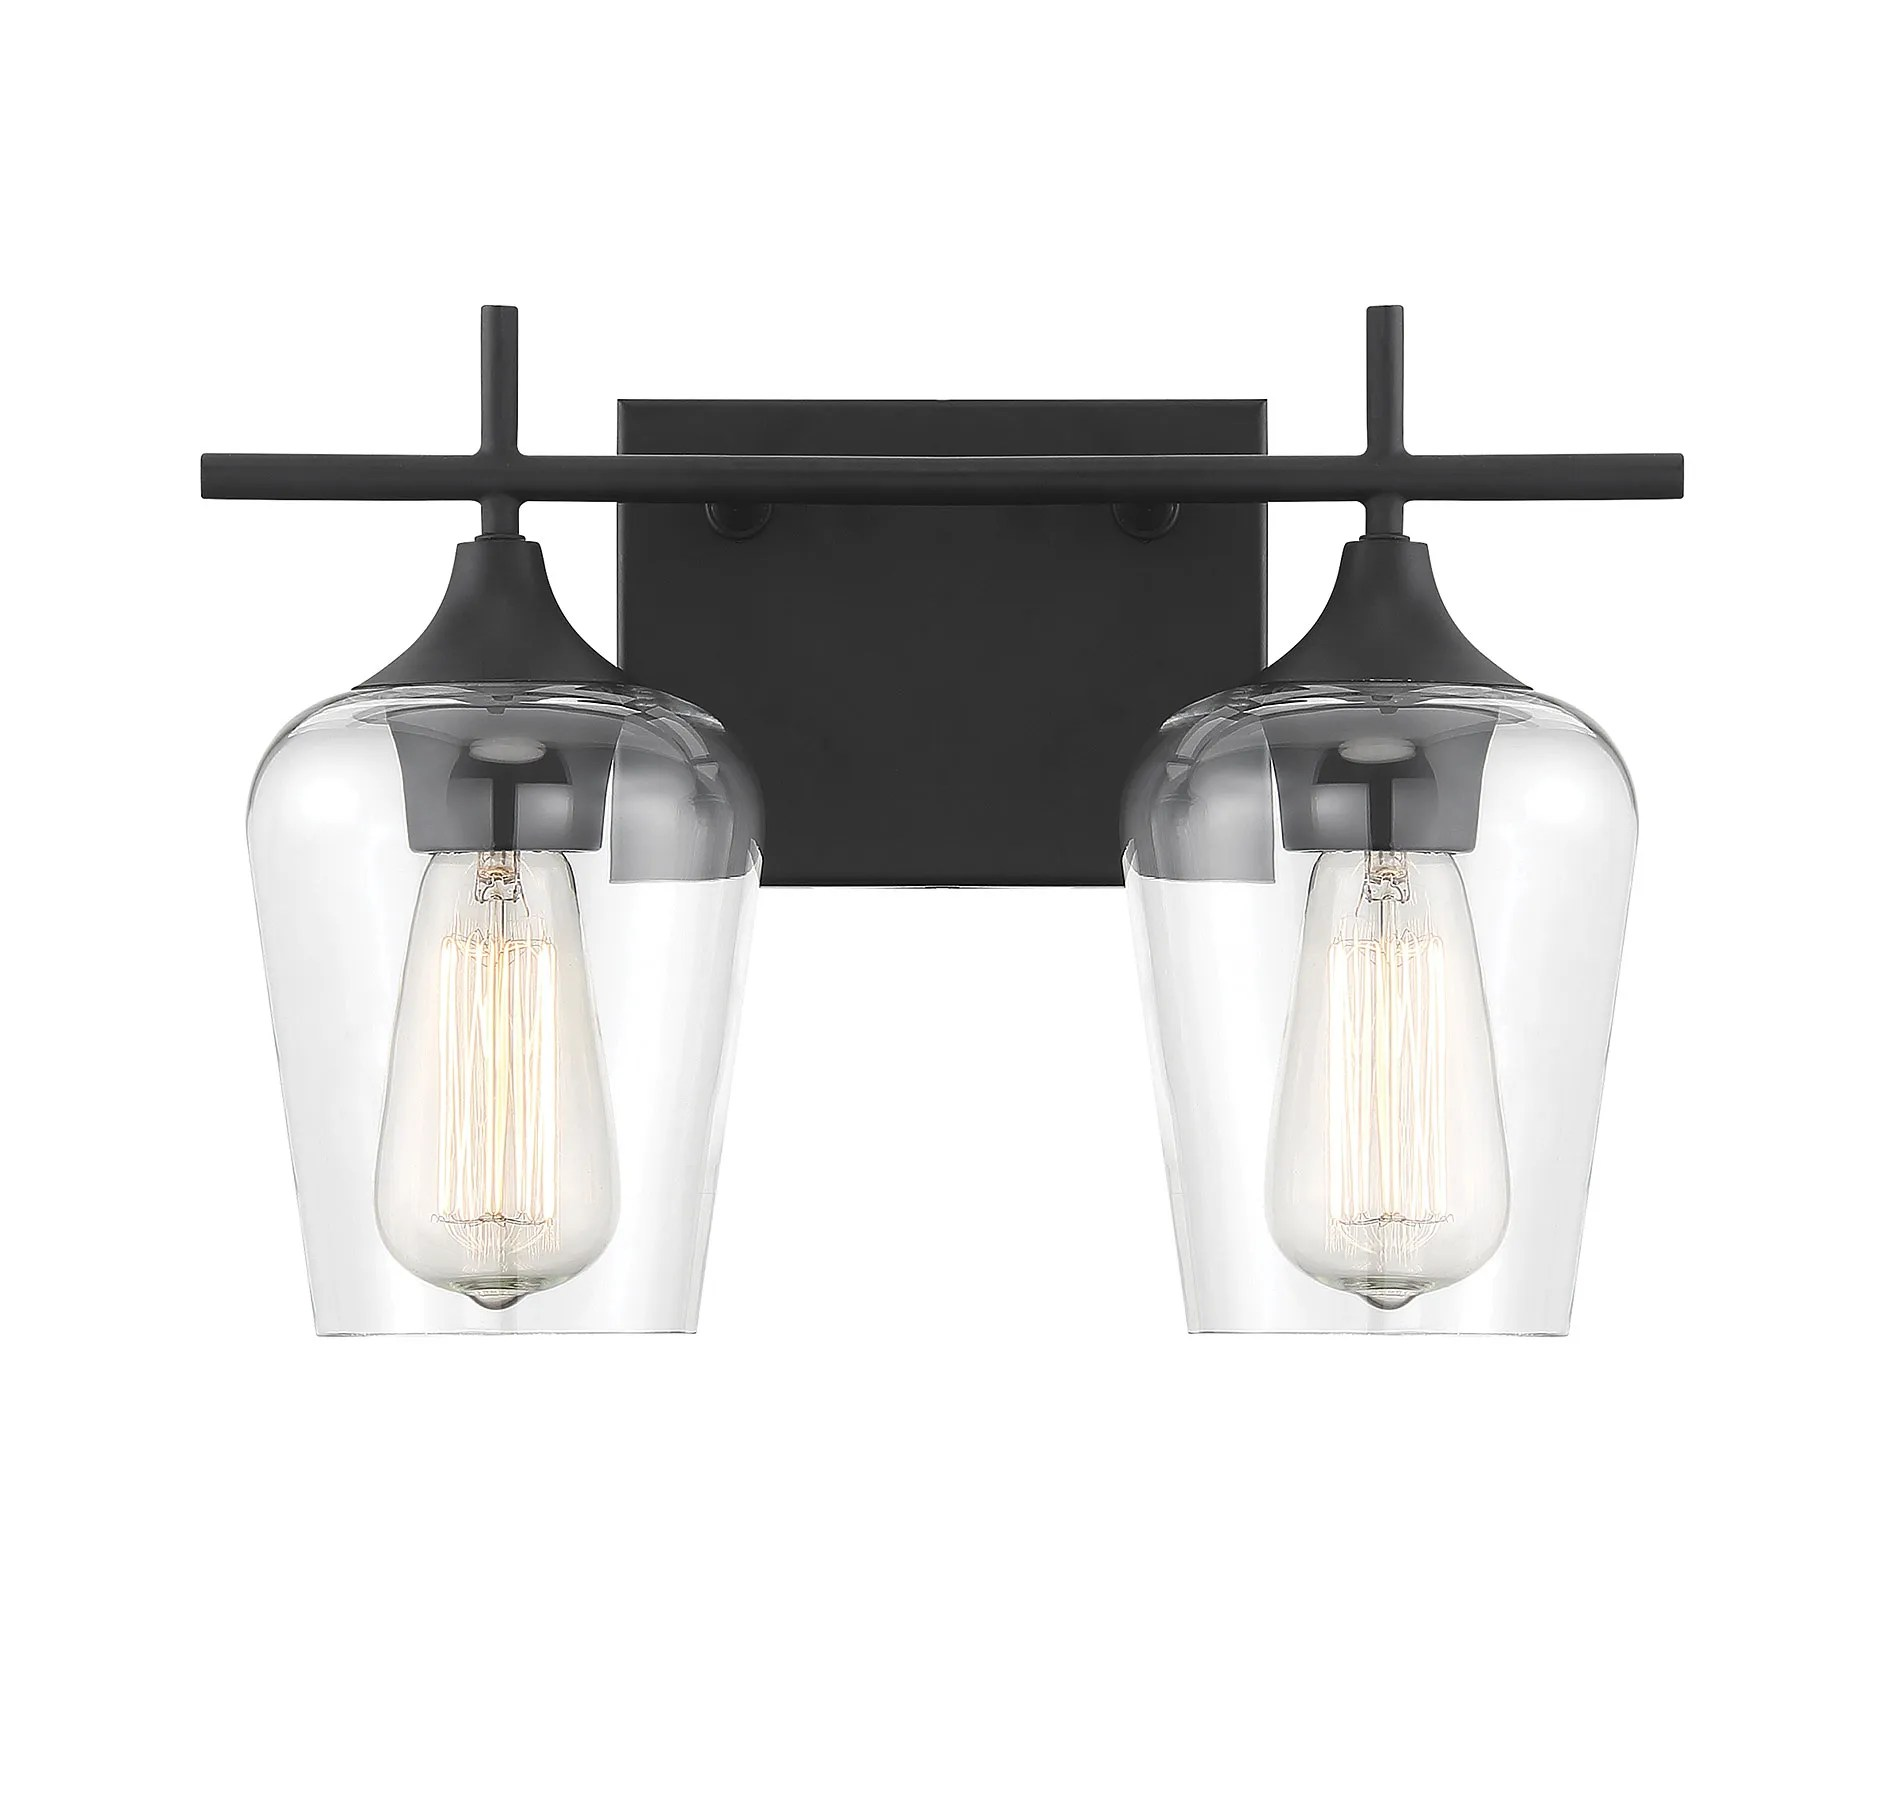 Savoy House Octave 2 Light Bathroom Vanity Light In Black